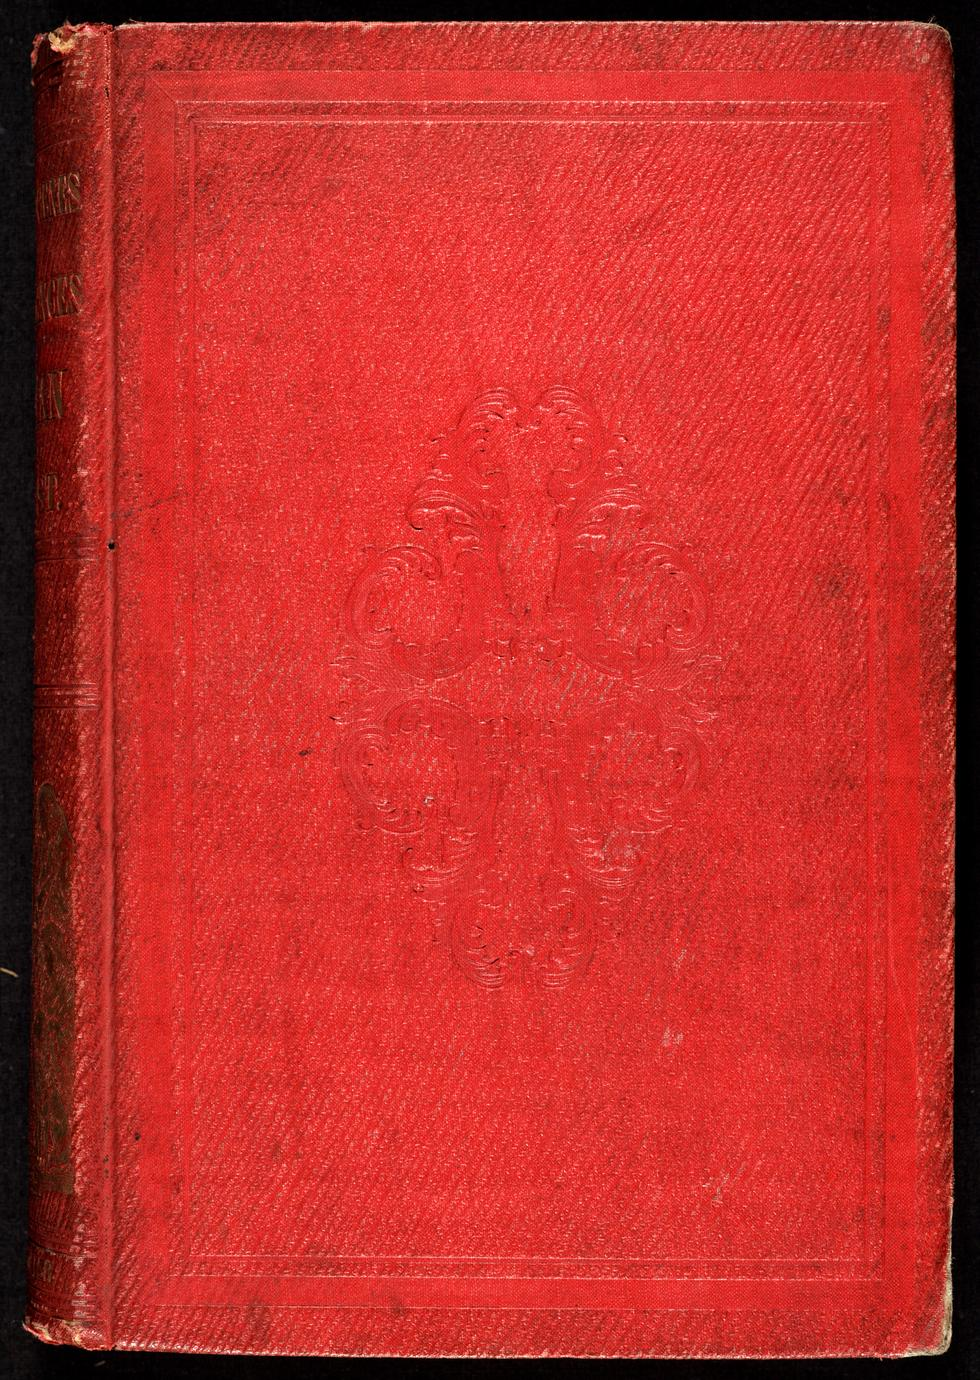 Western scenes and reminiscences : together with thrilling legends and traditions of the red men of the forest : to which is added several narratives of adventures among the Indians (1 of 2)